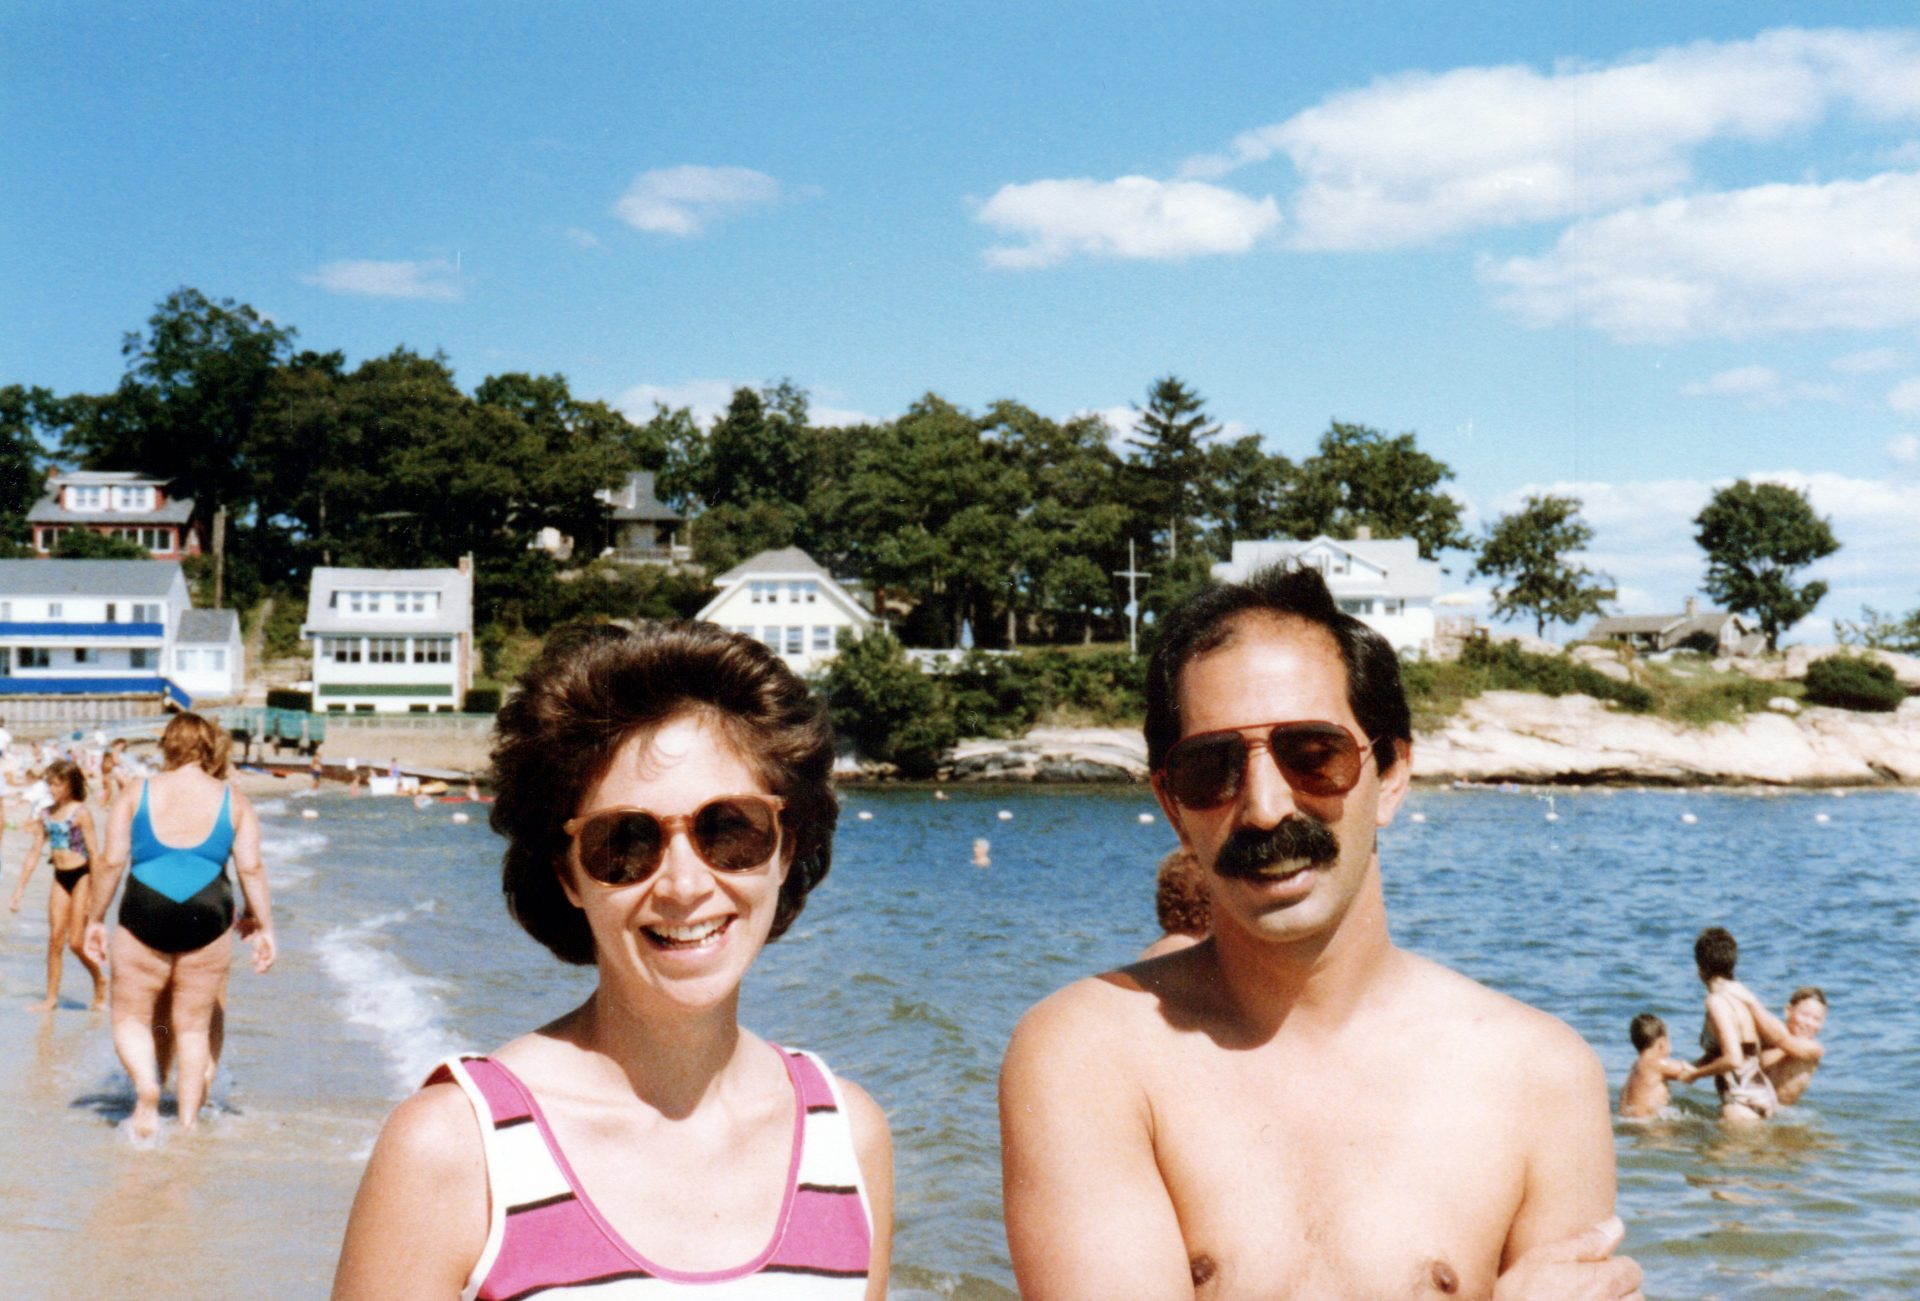 Angie and Jimmy at Point O' Woods Beach, Old Lyme, CT